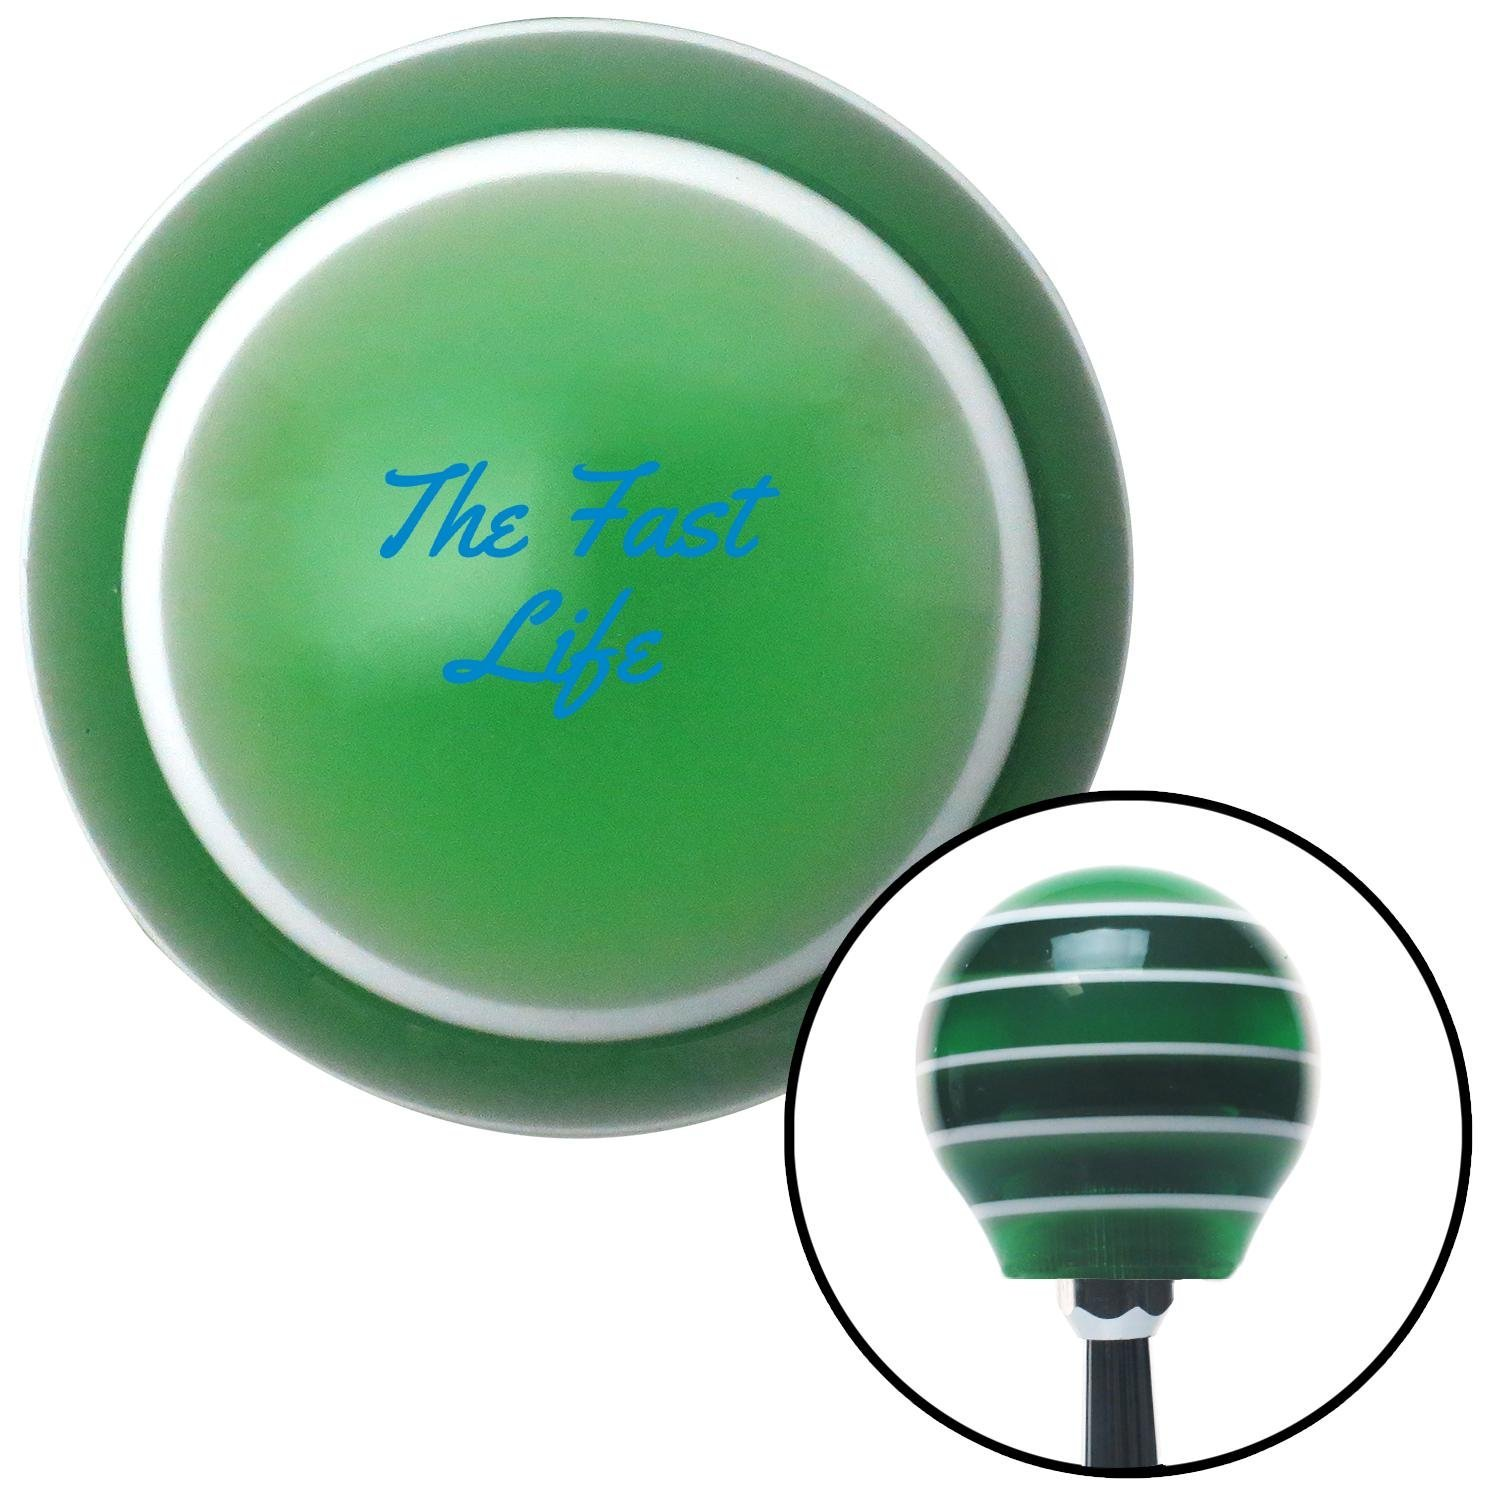 American Shifter 275107 Shift Knob Blue The Fast Life Green Stripe with M16 x 1.5 Insert